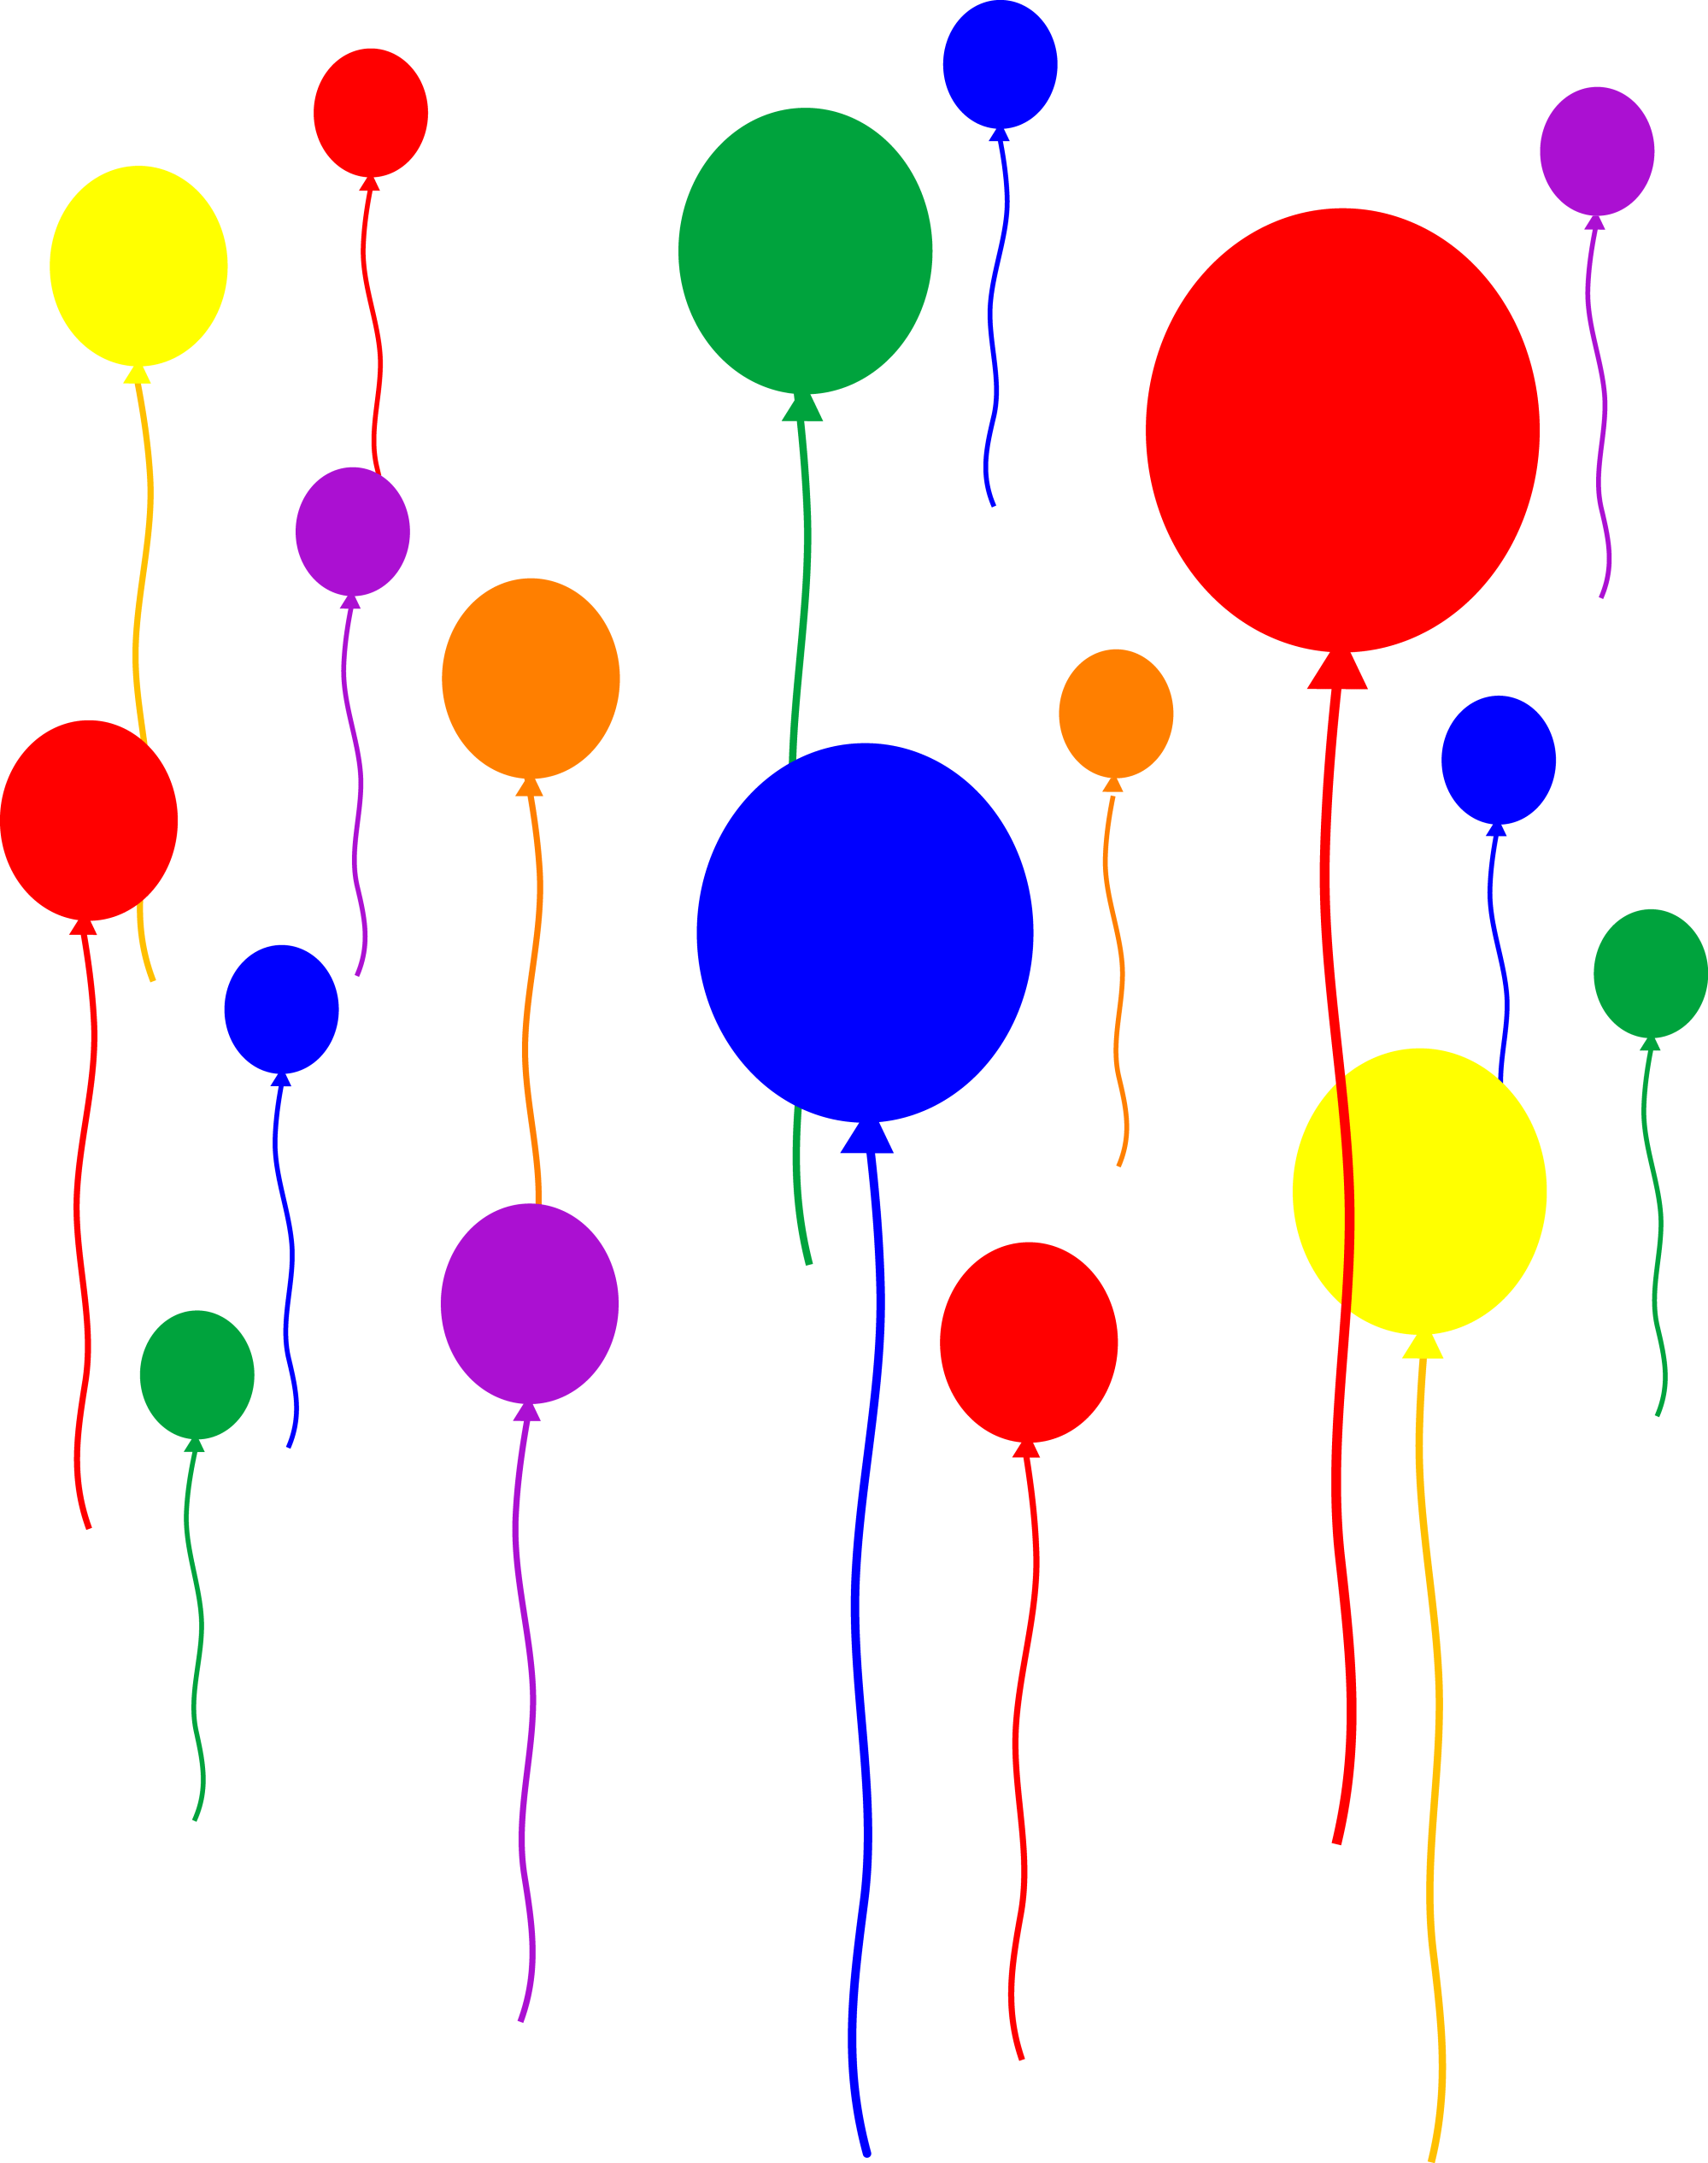 hight resolution of party balloons on transparent background free clip art